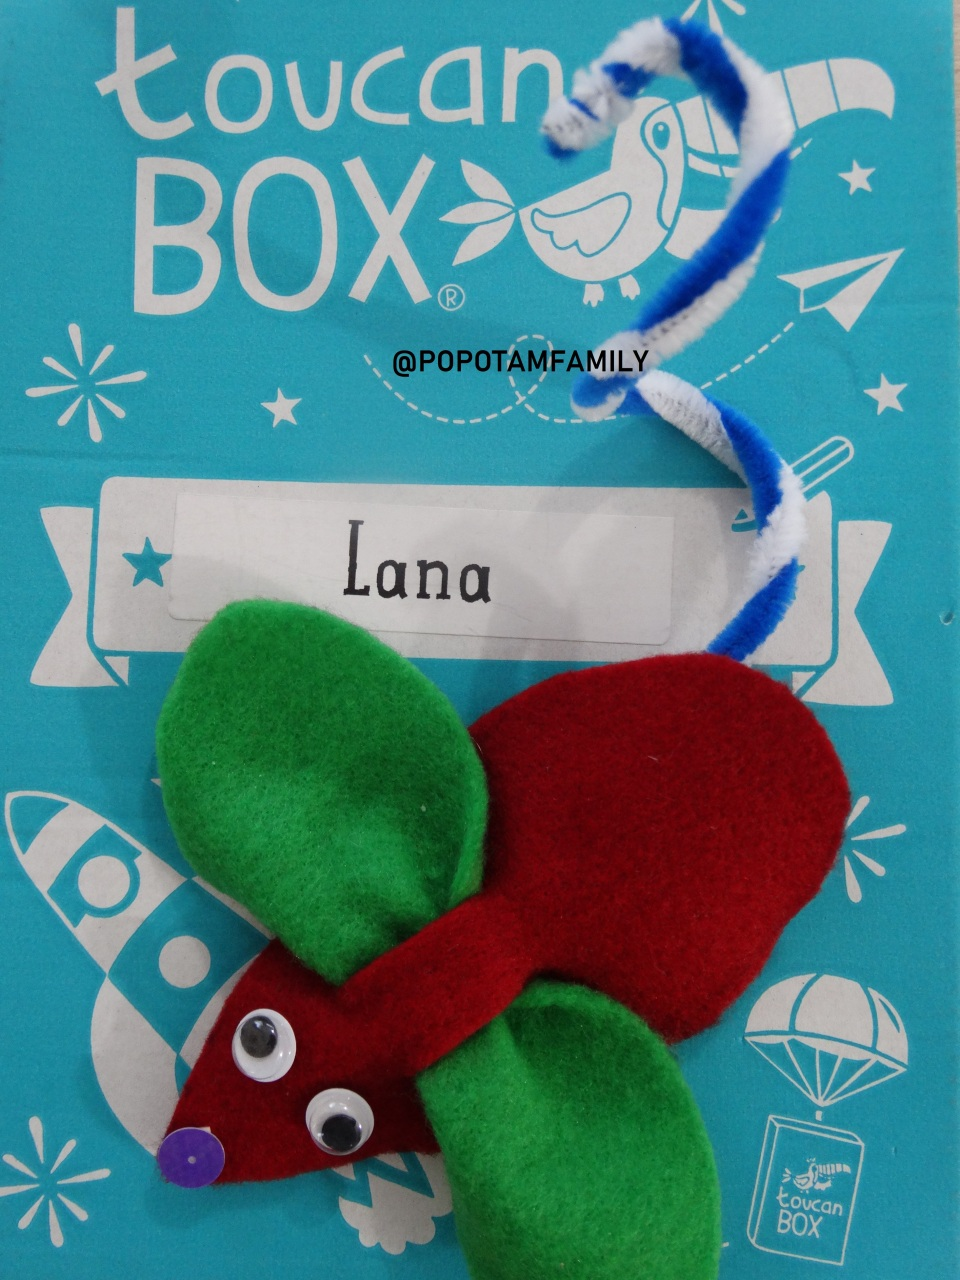 TOUCAN BOX - @POPOTAMFAMILY